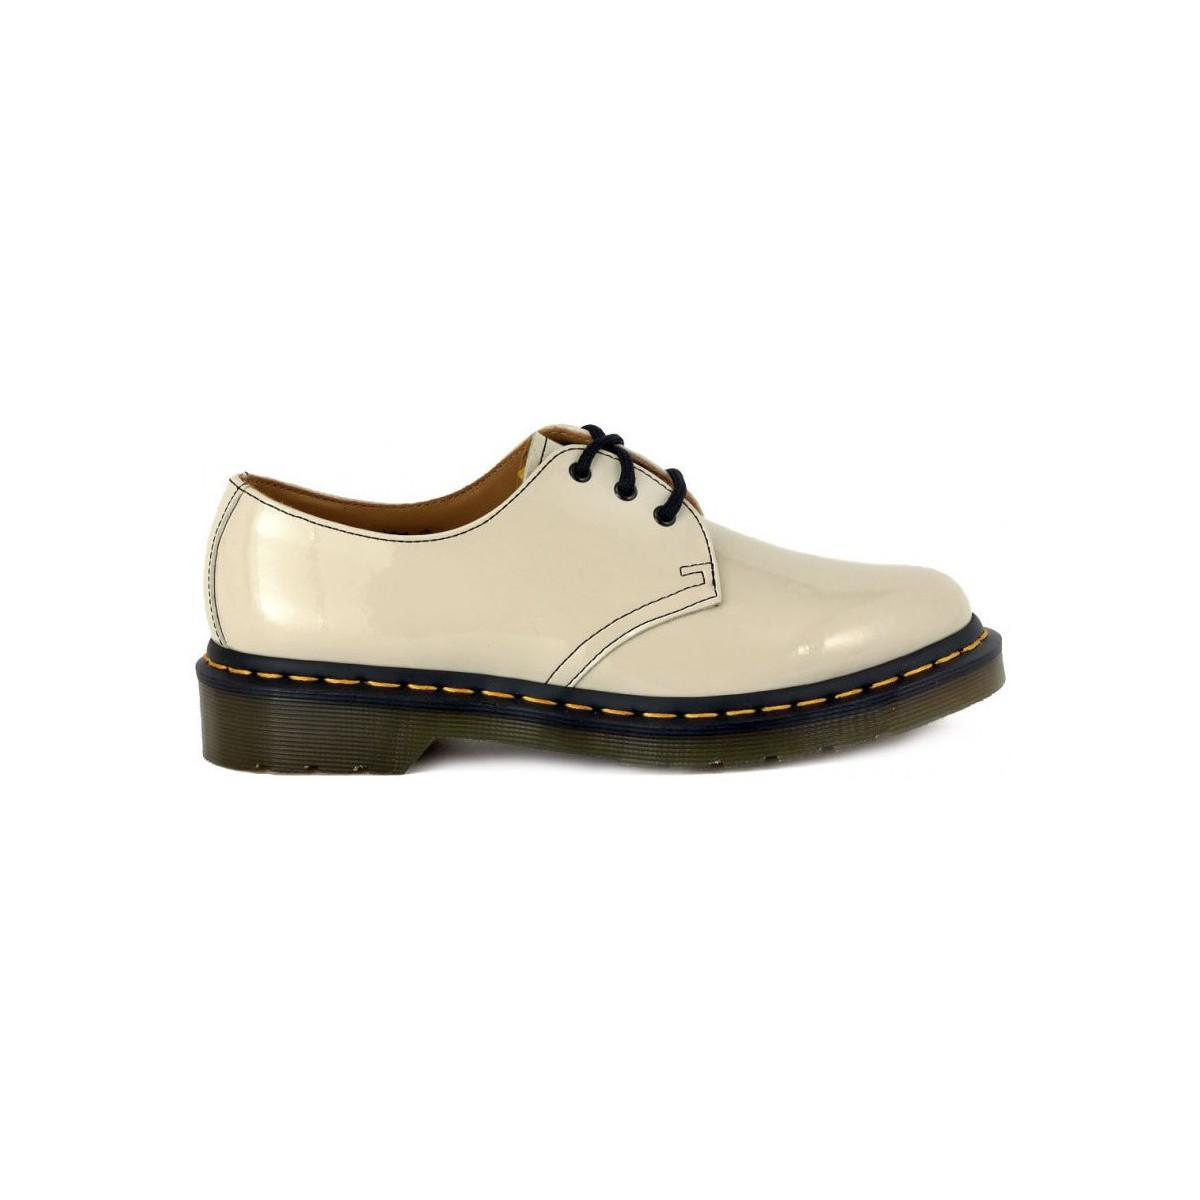 Dr. Martens 1461 ASP women's Casual Shoes in Low Shipping Fee LOz3sjv